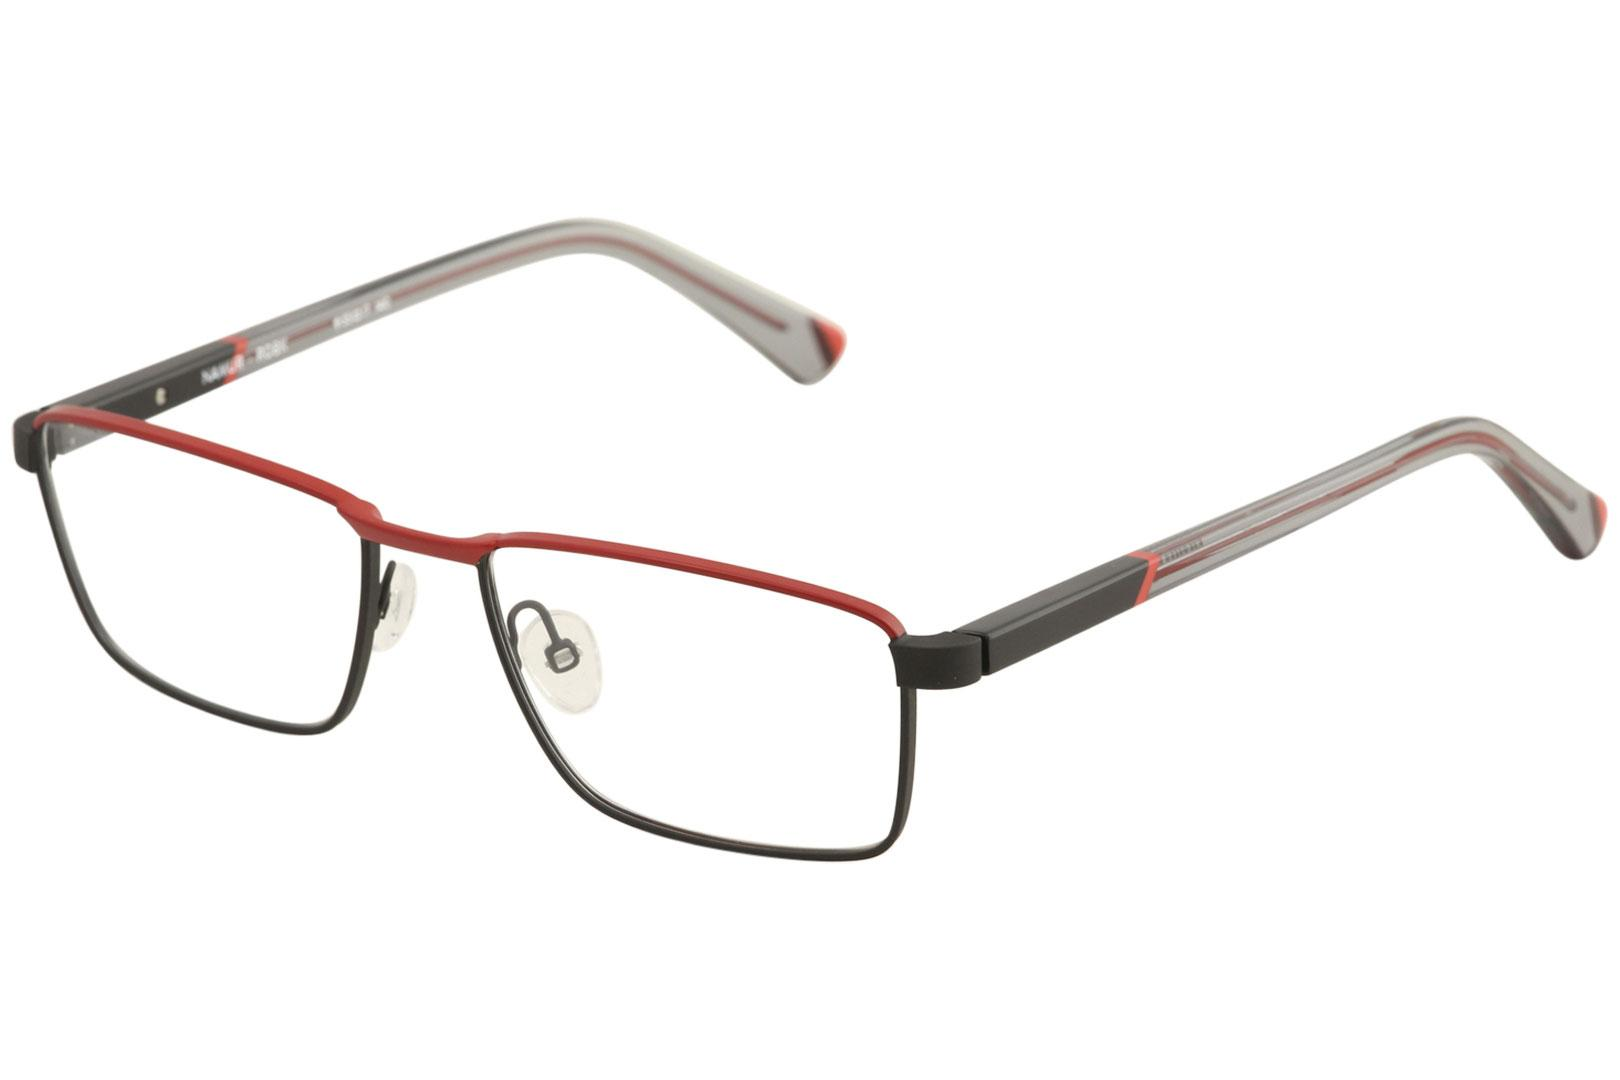 Image of Etnia Barcelona Men's Eyeglasses Namur Full Rim Optical Frame - Red/Black   RDBK - Lens 55 Bridge 17 Temple 140mm